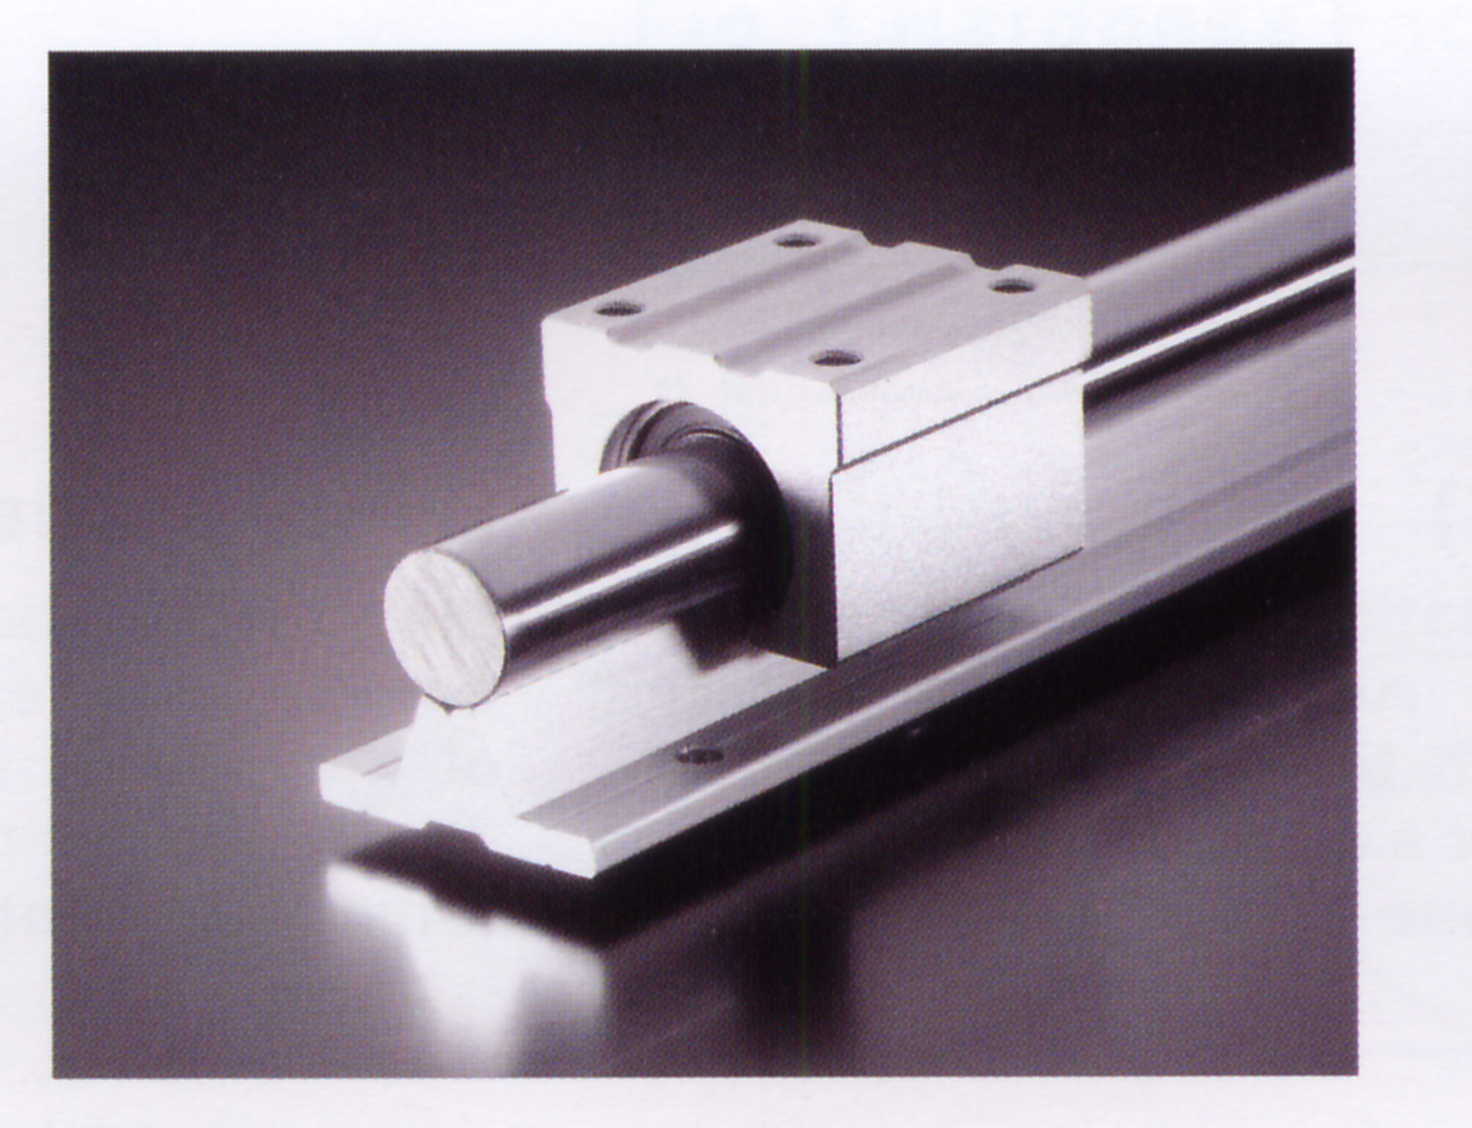 With supporting optical axis + aluminum prop sbr linear guide bearing steel hardened cylindrical guide rail bracket aluminum complete specifications